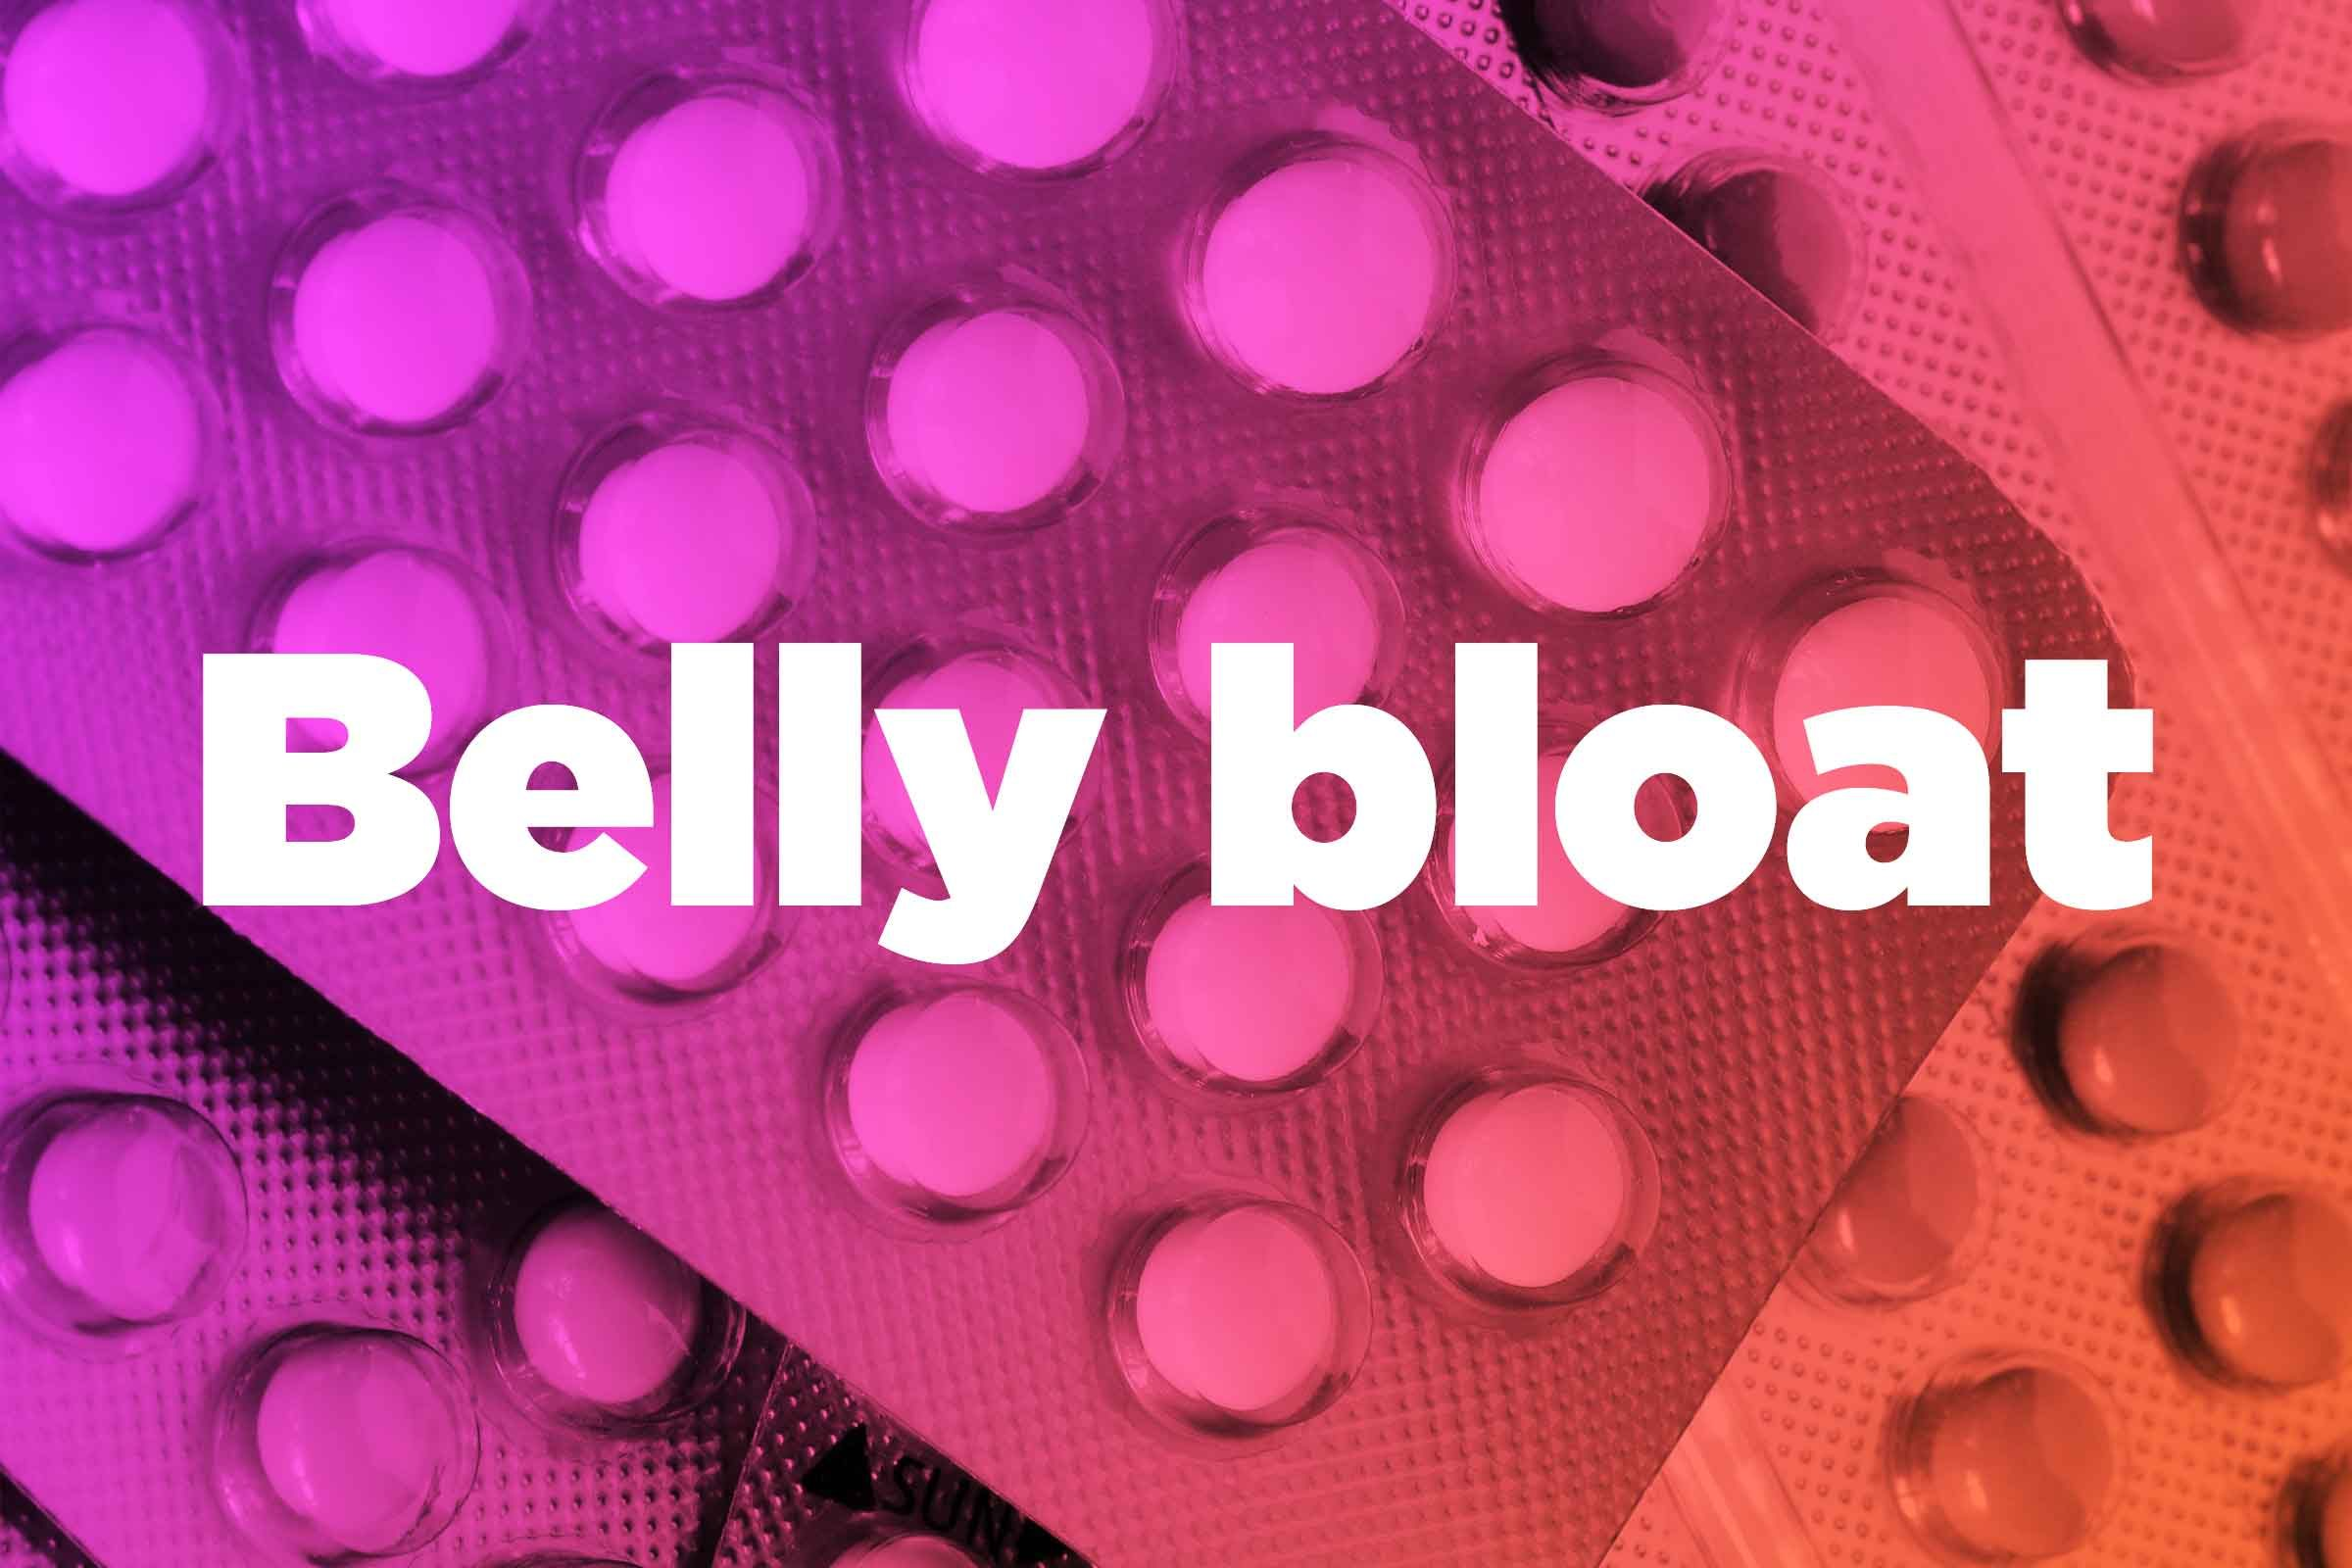 Tummy Bloat Is Your Middle Name